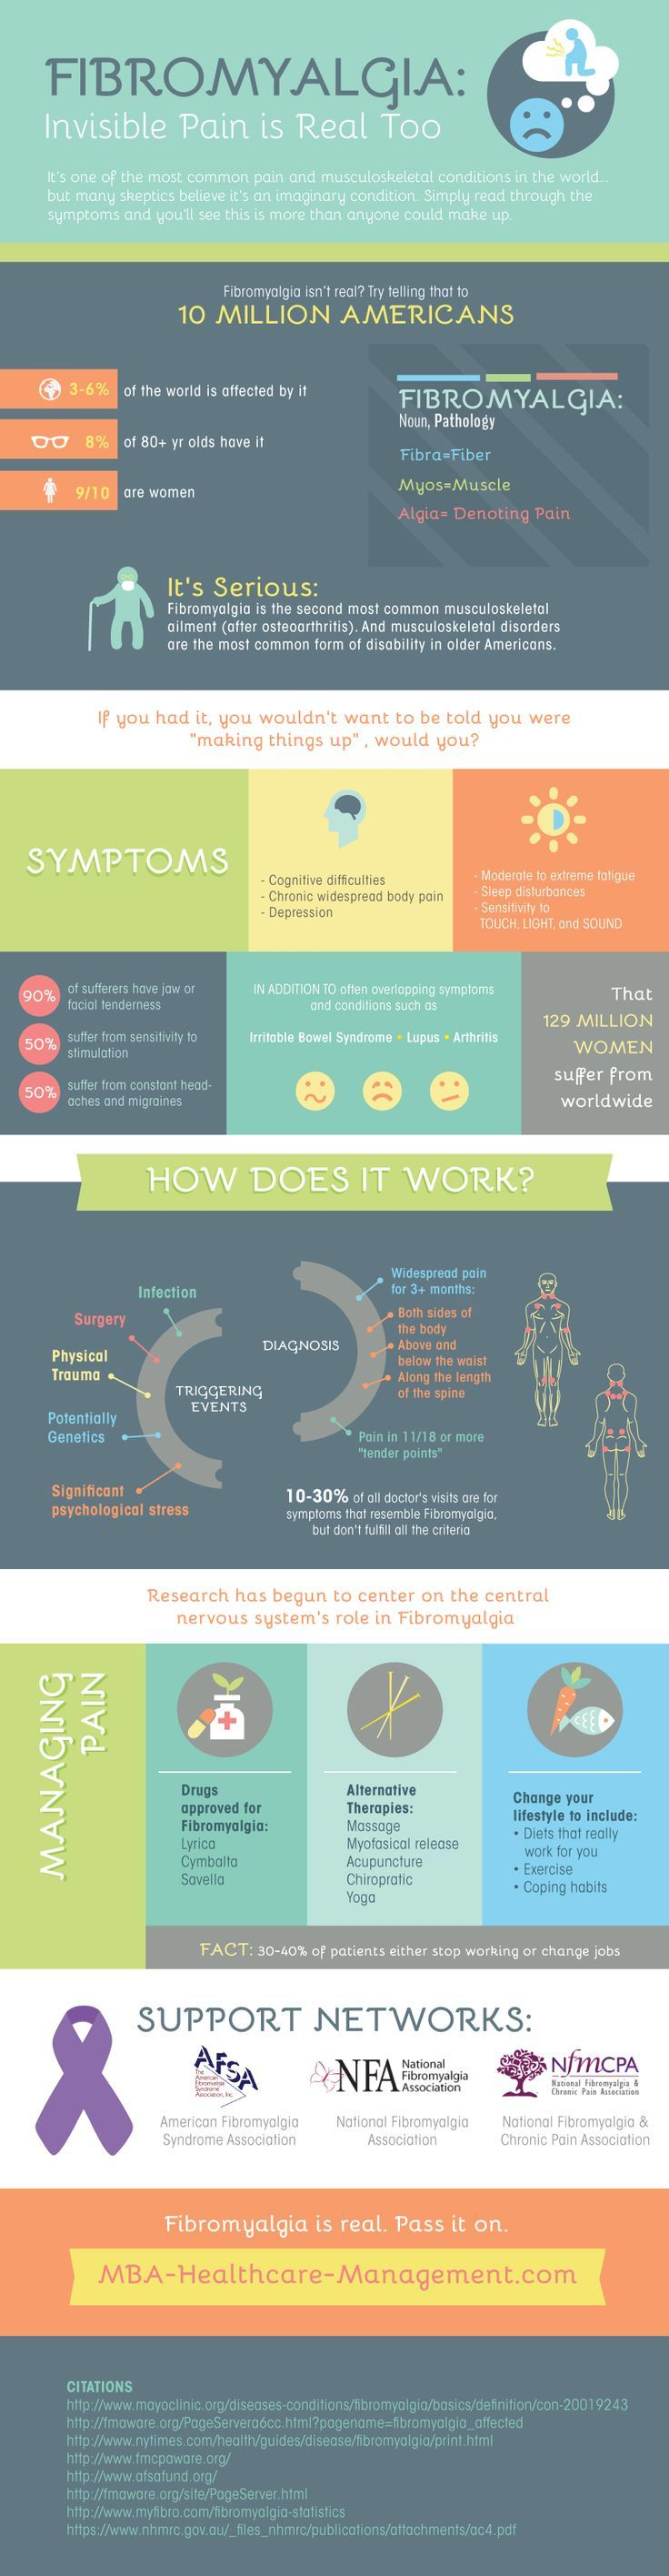 """Fibromyalgia pain relief  Fibromyalgia Infographic """"Fibromyalgia affects as many as 10 million Americans ages 18 and older, and 3% to 6% of the global population. Ouch! This infographic reveals what you need to know about this debilitating affliction, and what to do about it to manage the pain:"""" +THE GLUTEN FREE GRAINS GUIDE """"One of the most Popular Fibromyalgia diets is the Gluten Free Diet. …"""" link Note: ' """"…Quinoa, it contains soap-like molecules called saponins. Unlike gluten, which…"""